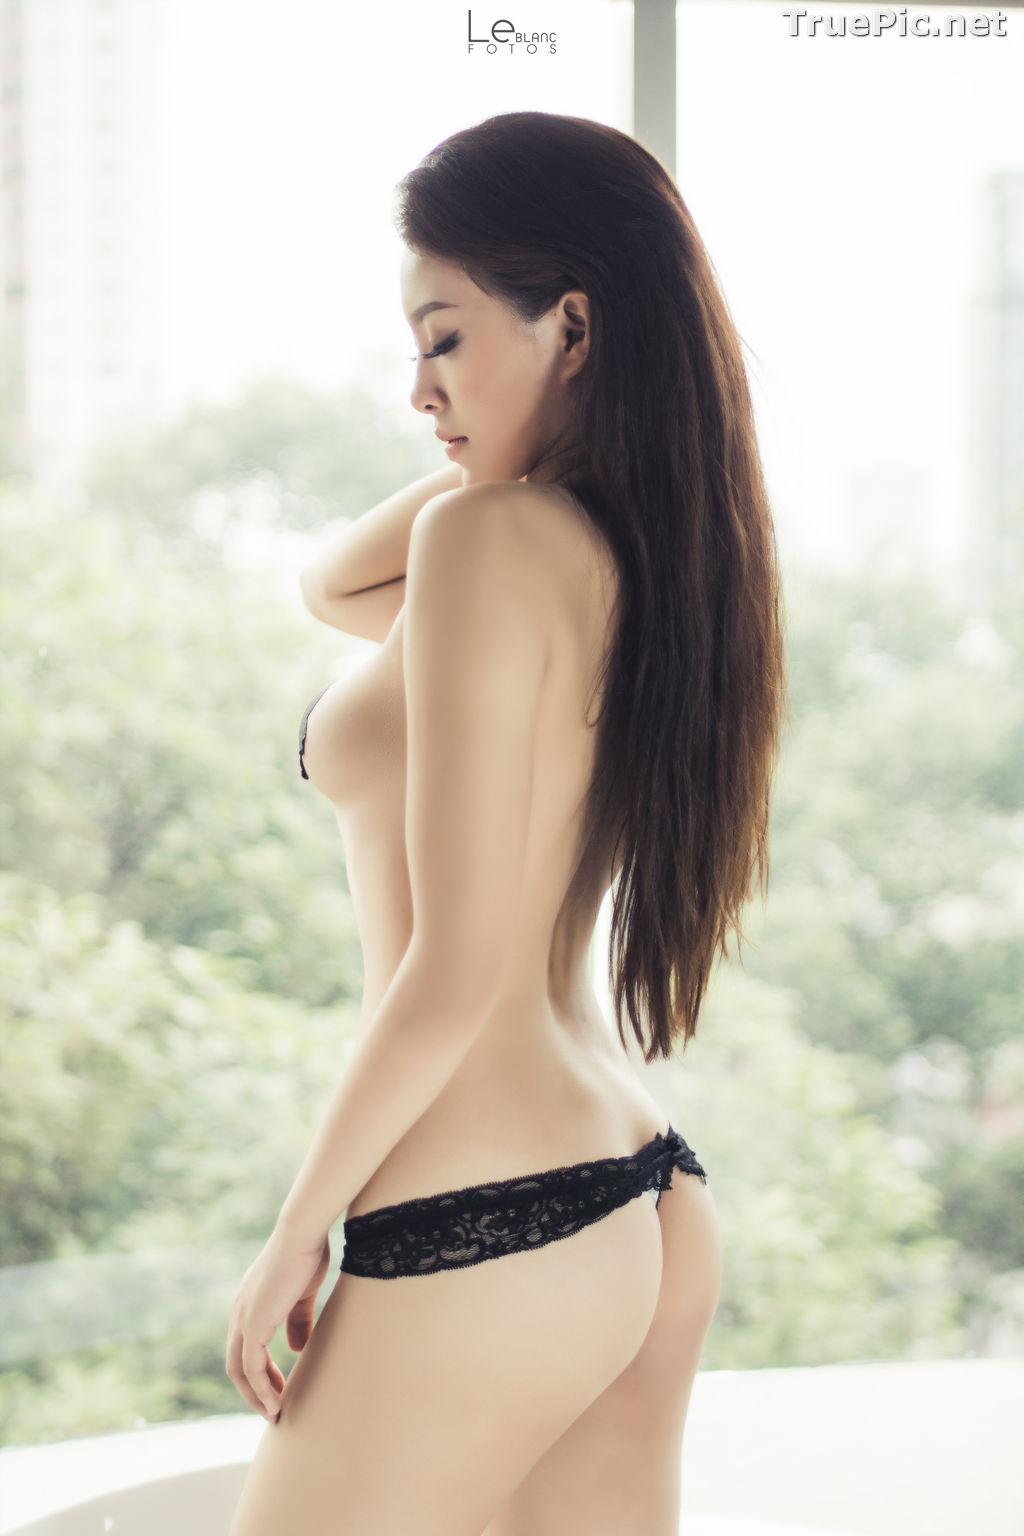 Image Vietnamese Beauties With Lingerie and Bikini – Photo by Le Blanc Studio #14 - TruePic.net - Picture-2